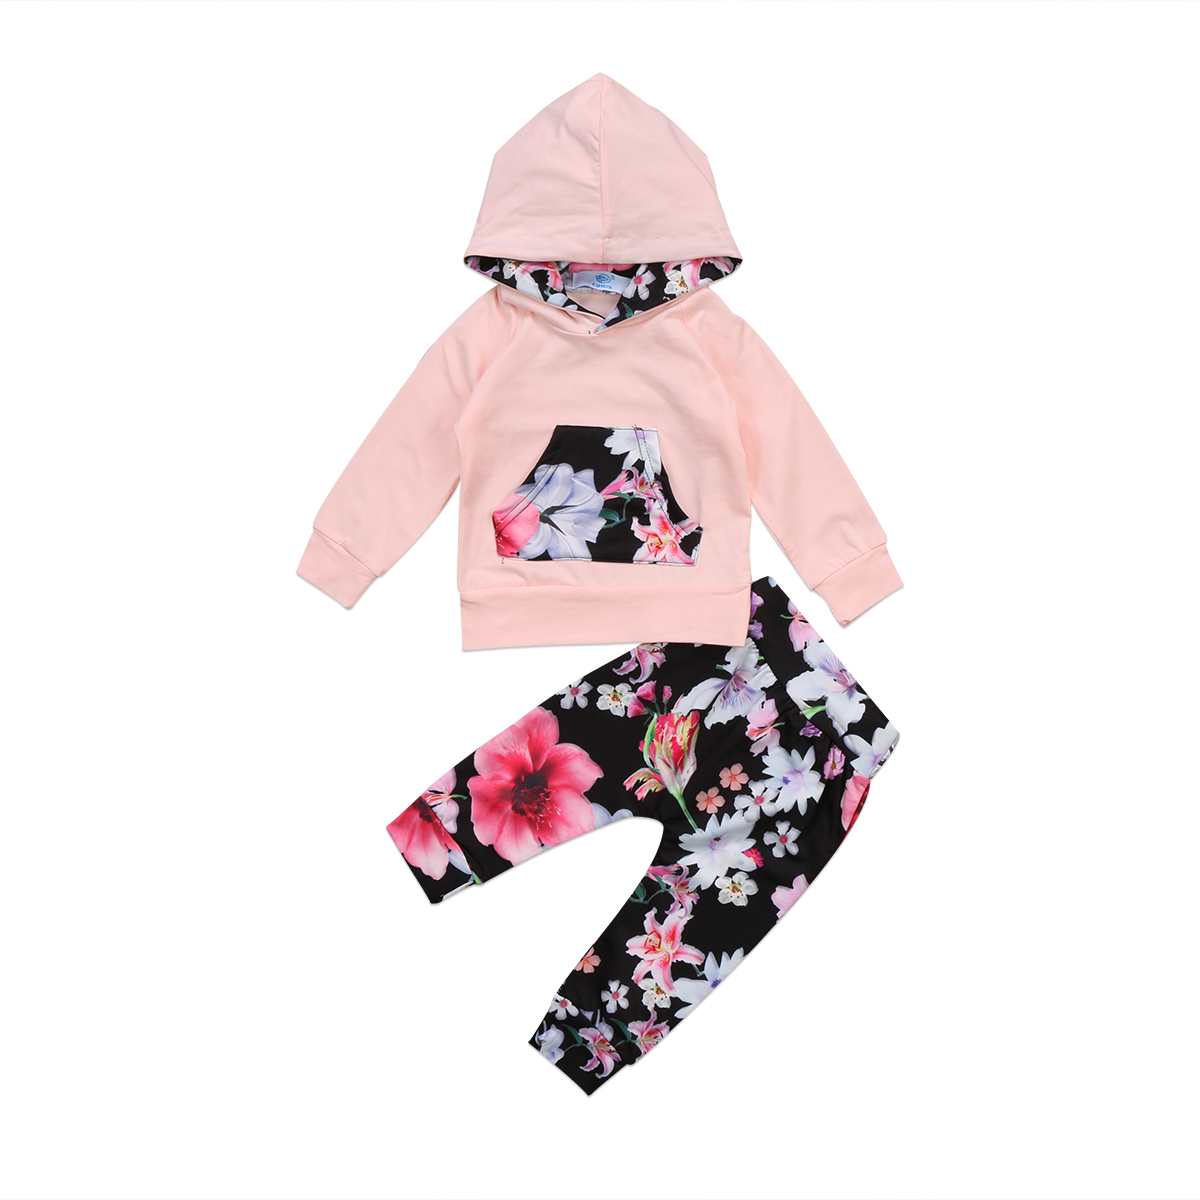 Infant Baby Girl Clothing Floral Hooded Tops Long Sleeve Top Pants Flower Cute Outfits Clothes Set Baby Girls